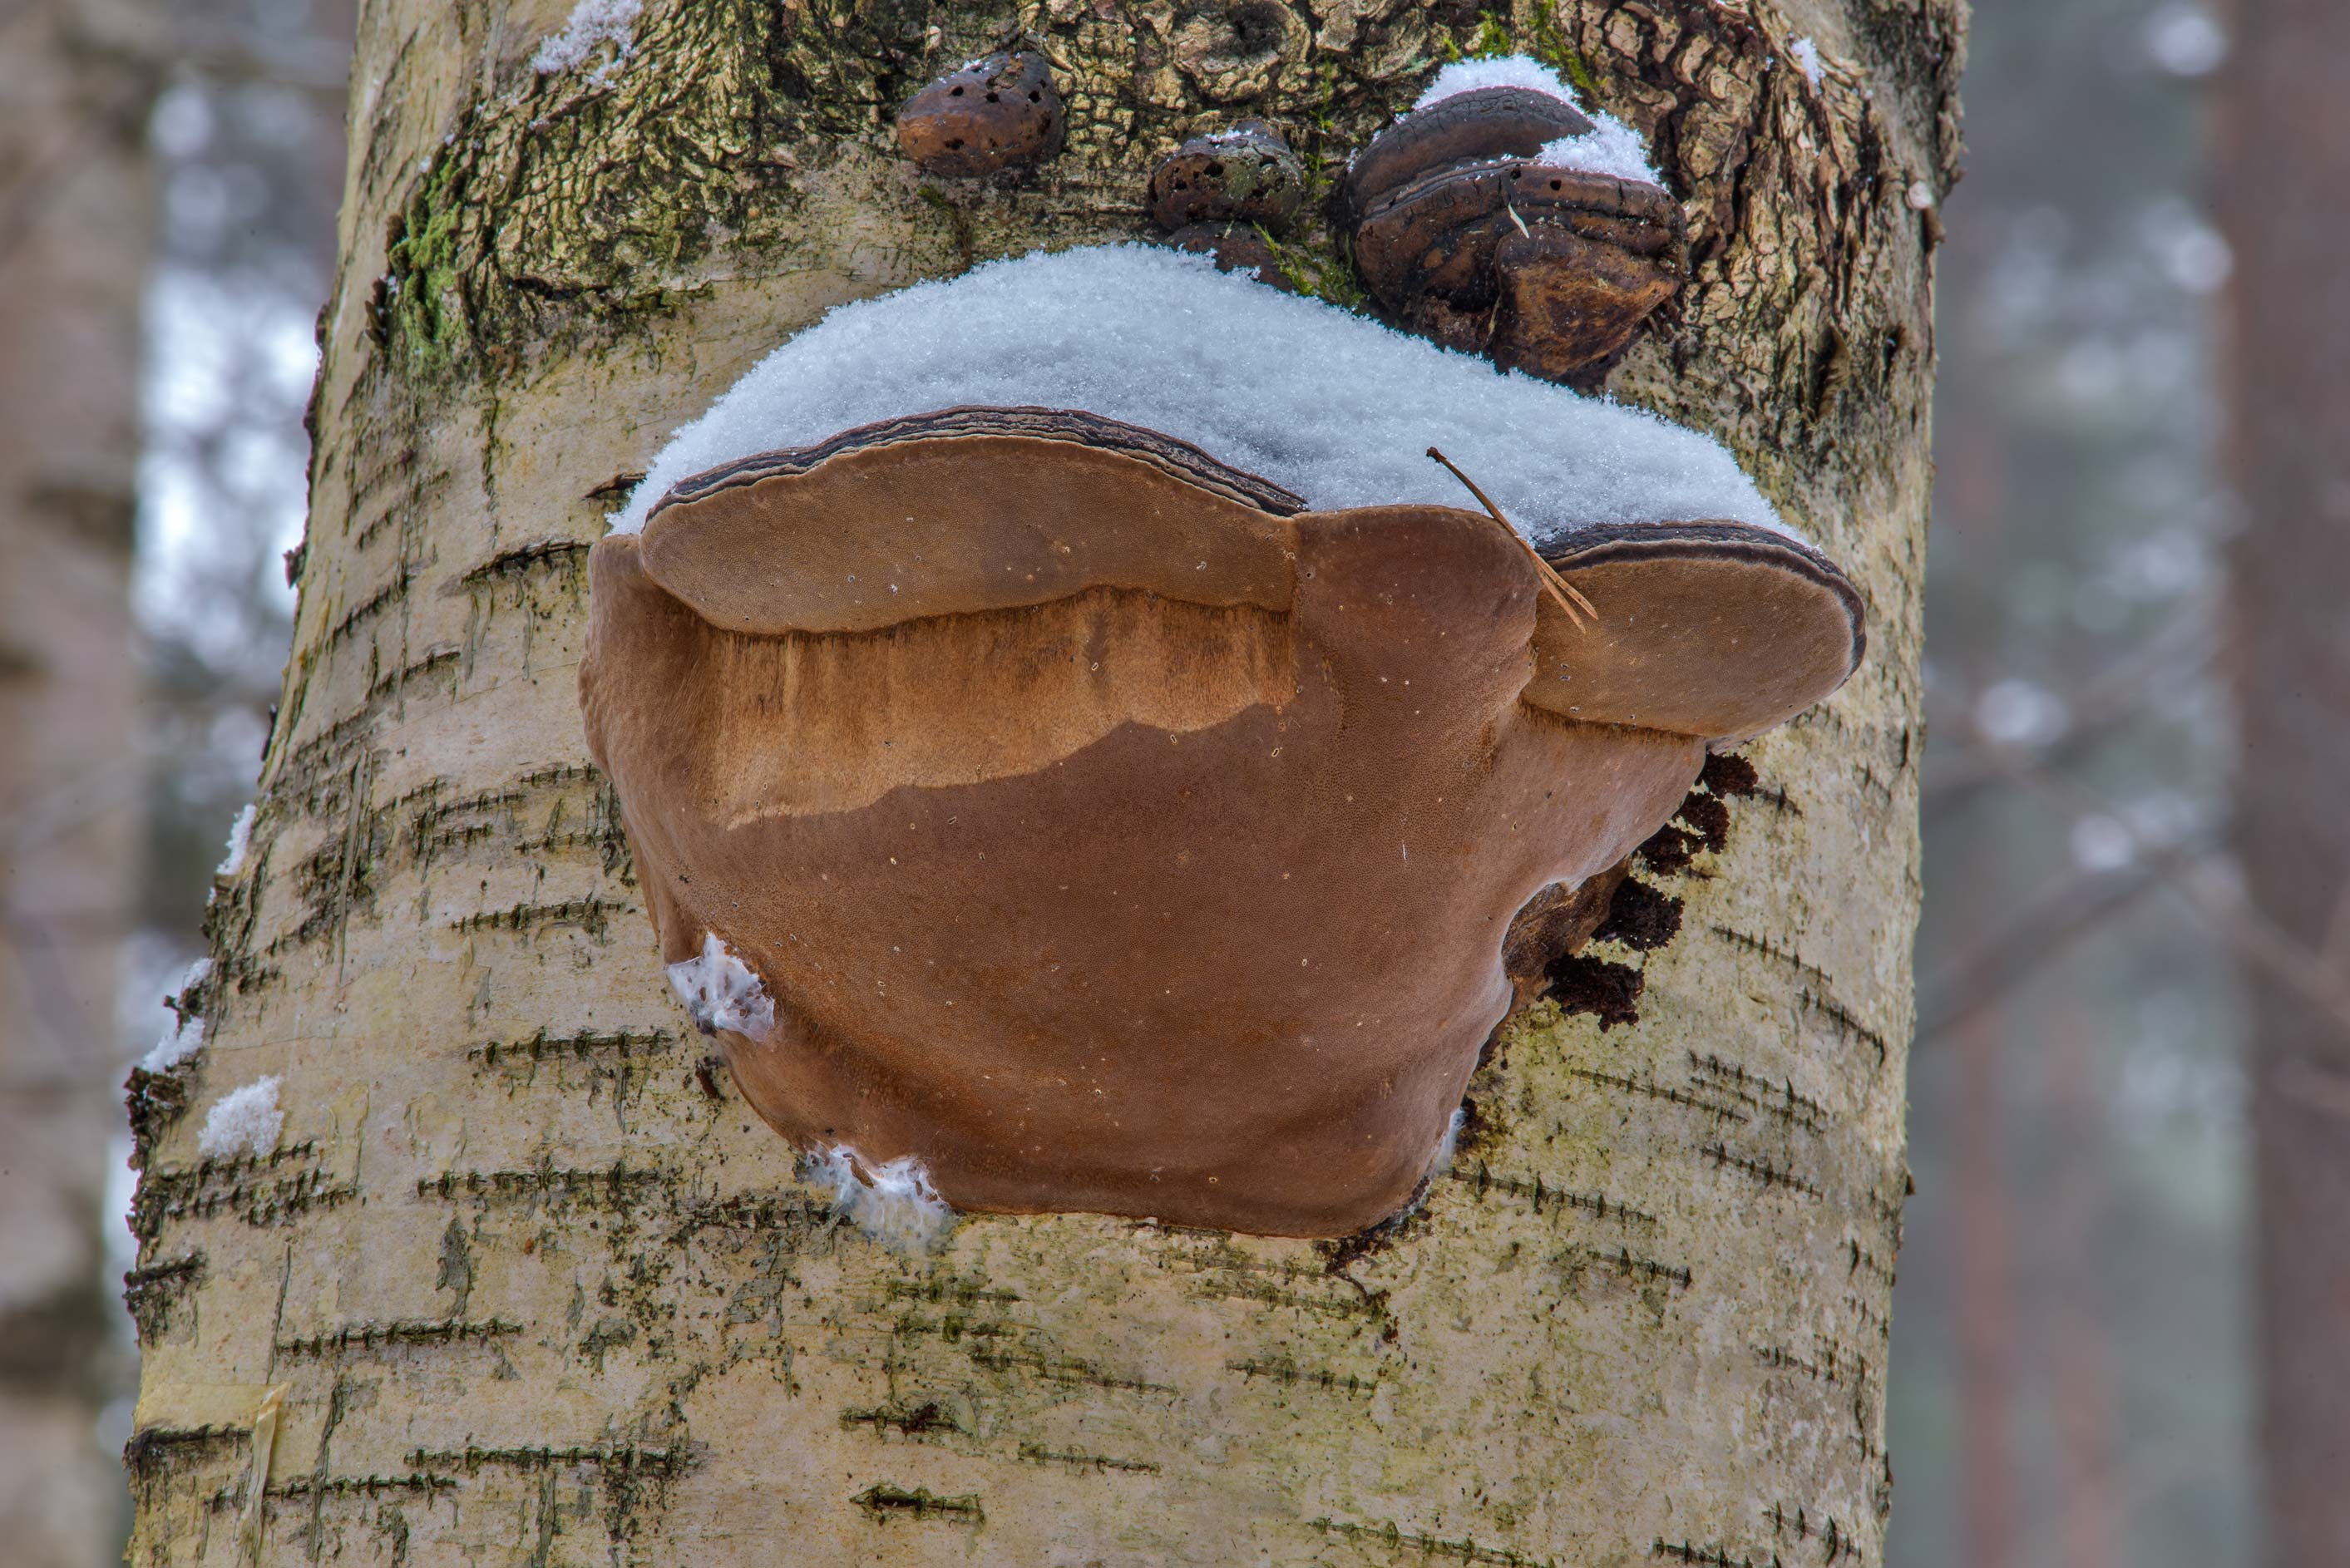 Willow bracket fungus (Phellinus igniarius...Park. St.Petersburg, Russia